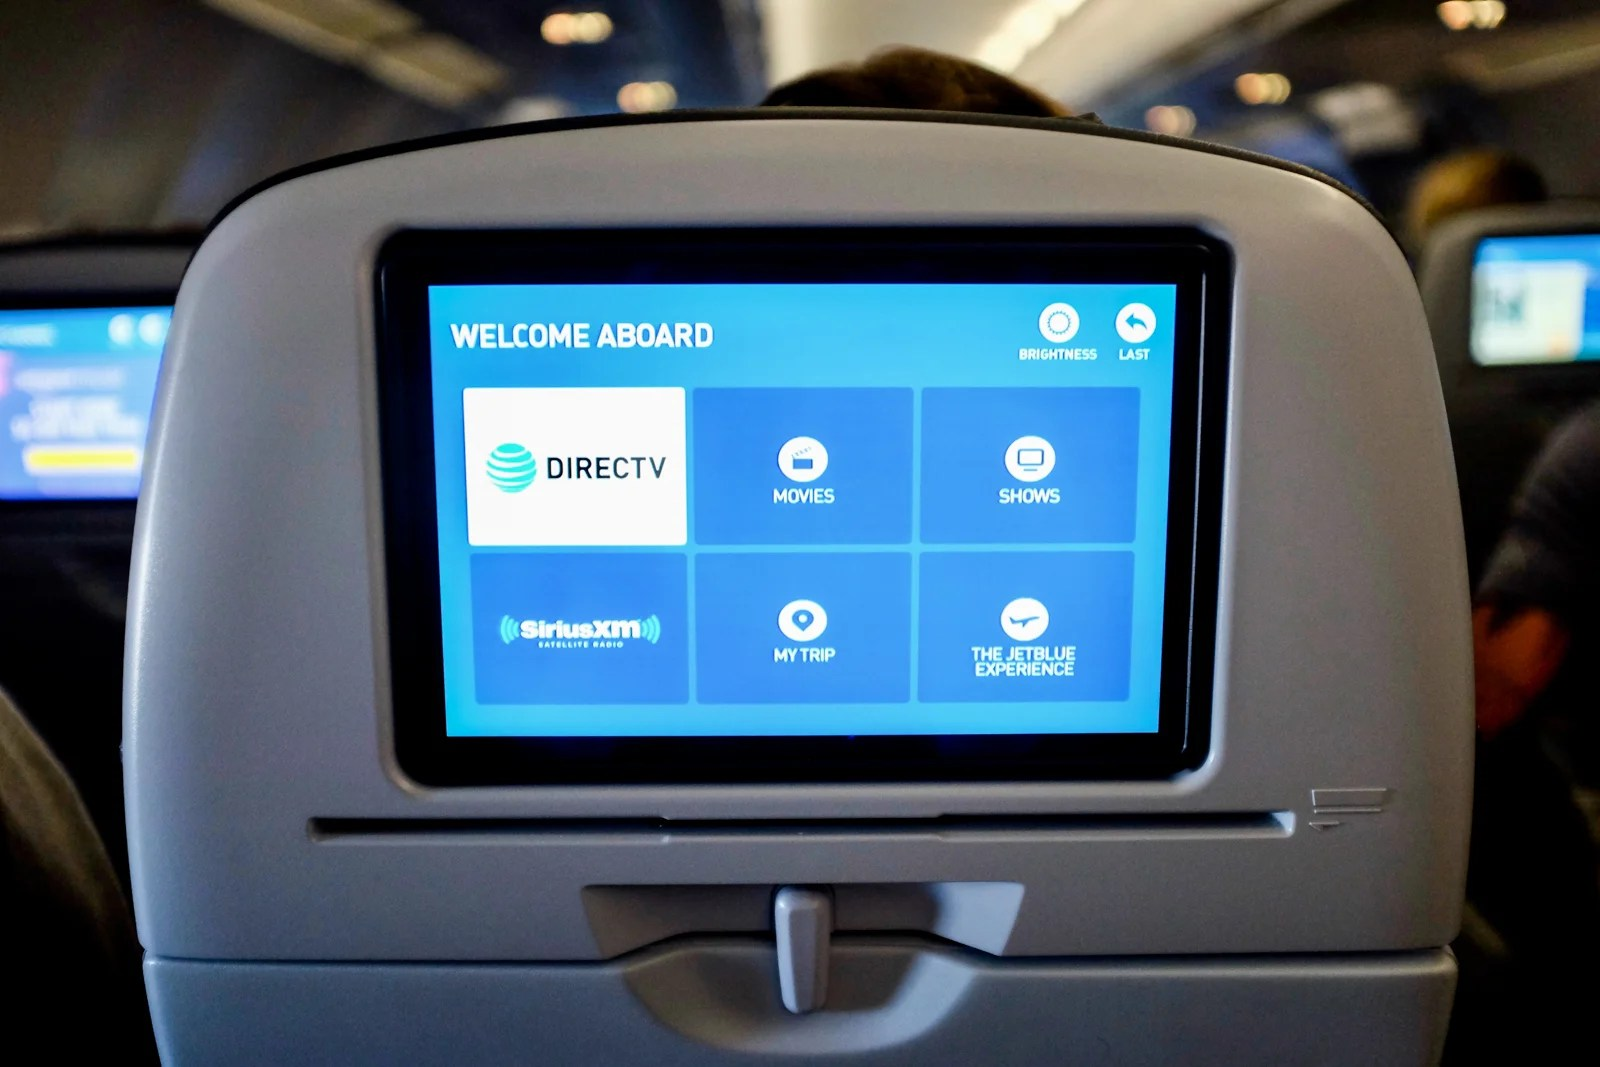 Review: JetBlue A321 in Economy, Fort Lauderdale to JFK